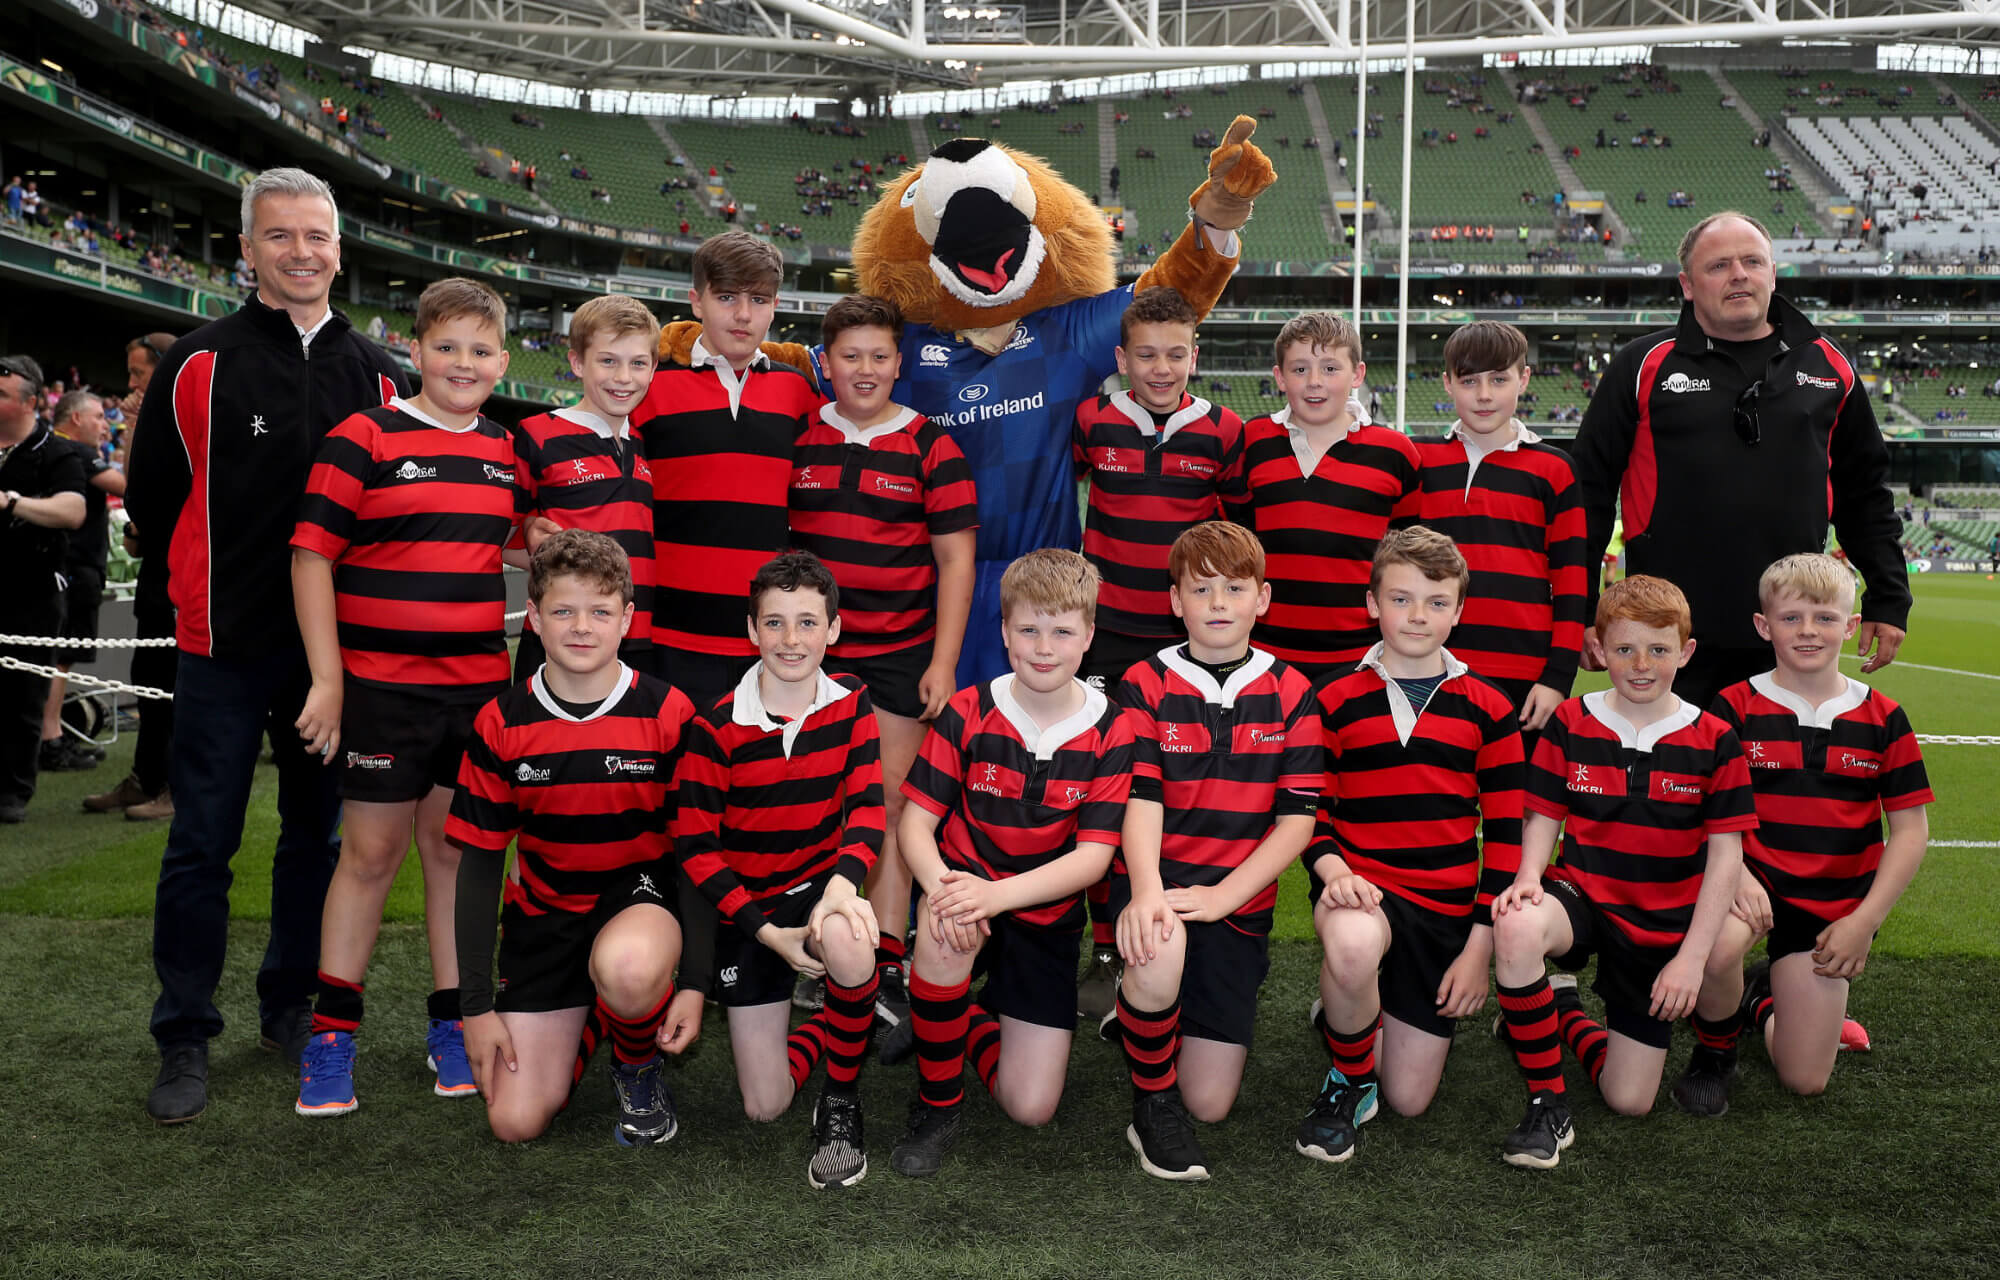 City of Armagh Pro14 Rugby Team at Aviva Stadium